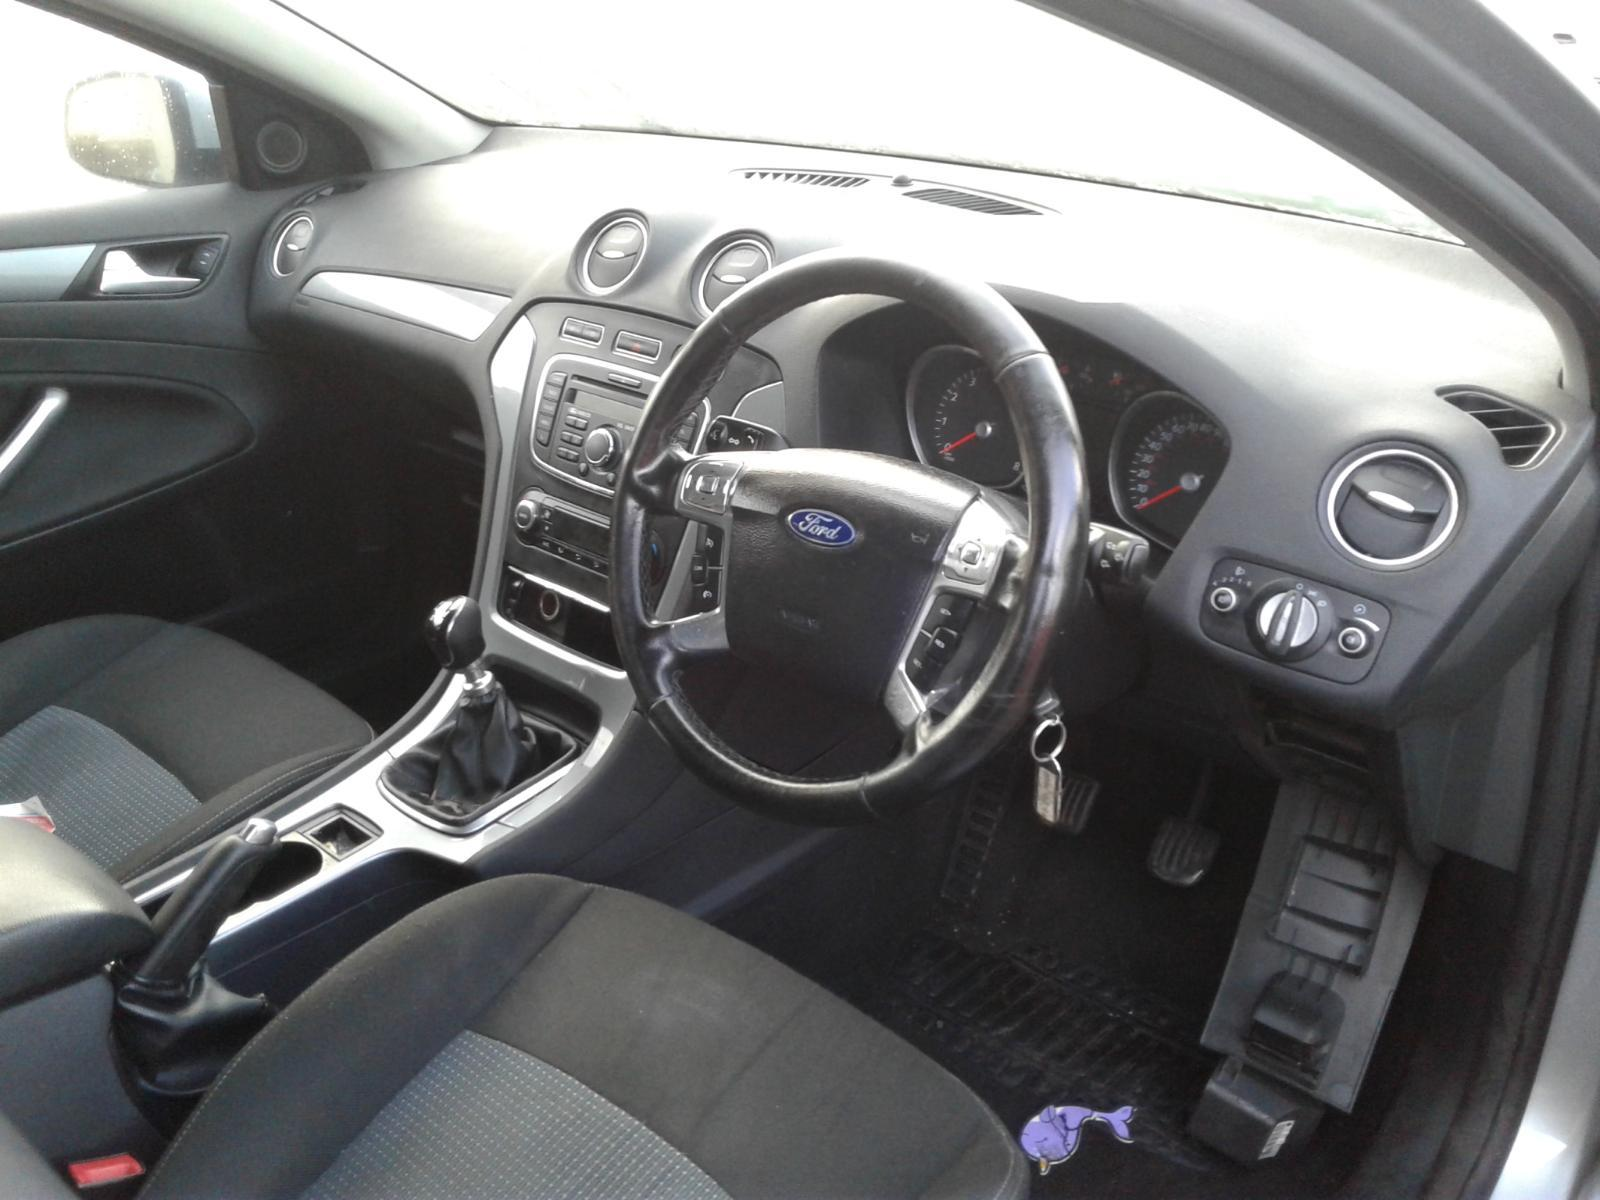 2012 FORD MONDEO Image